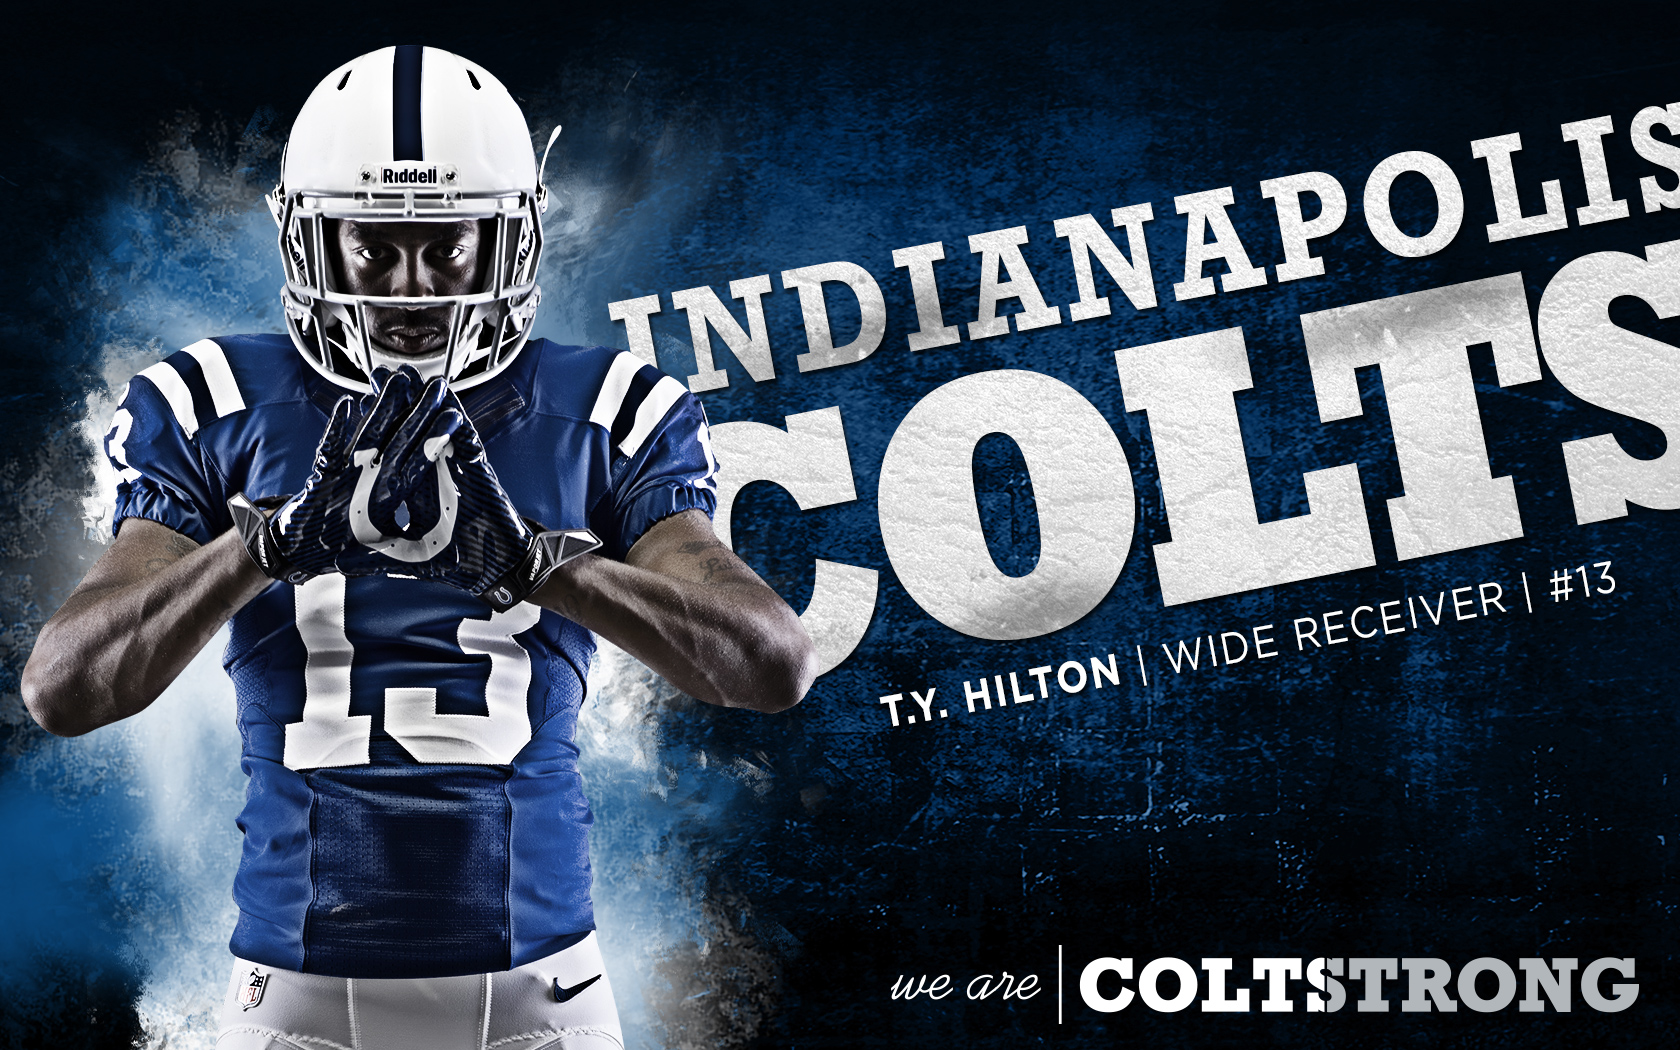 colts wallpaper #2